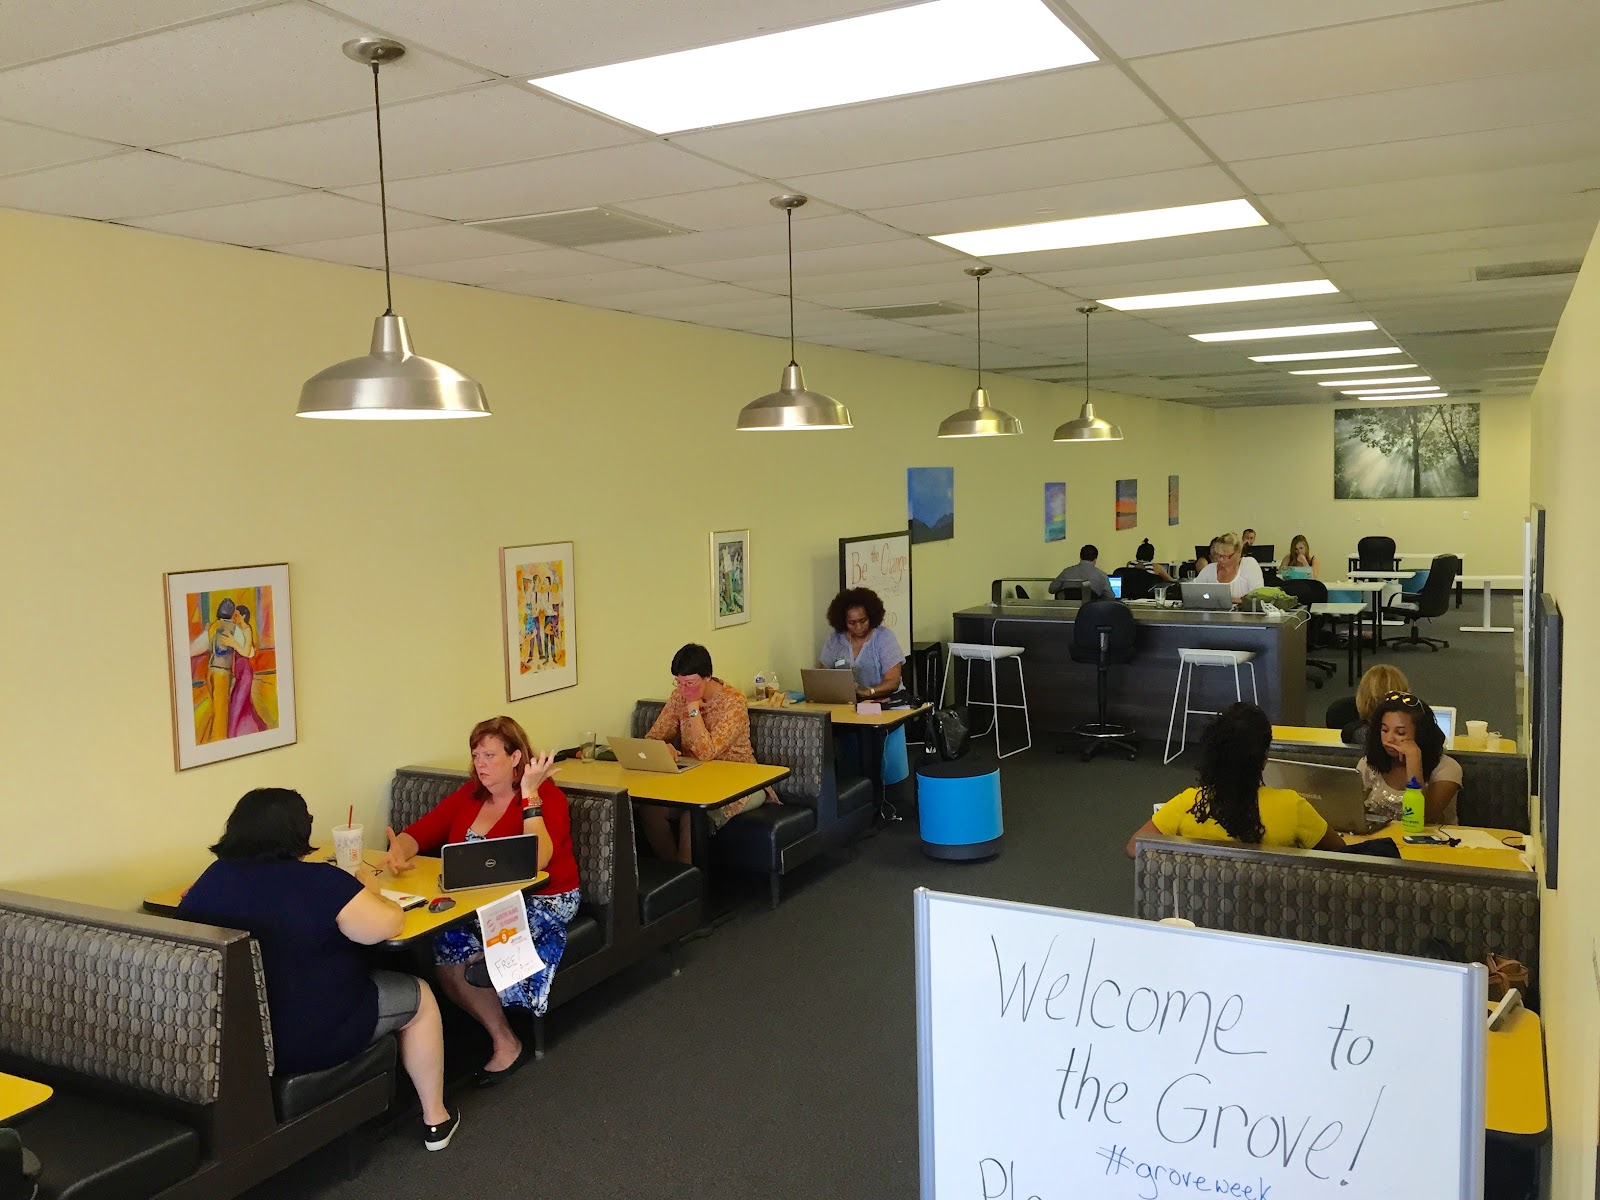 15 Best Coworking Spaces in Austin Texas [2020 List] 23